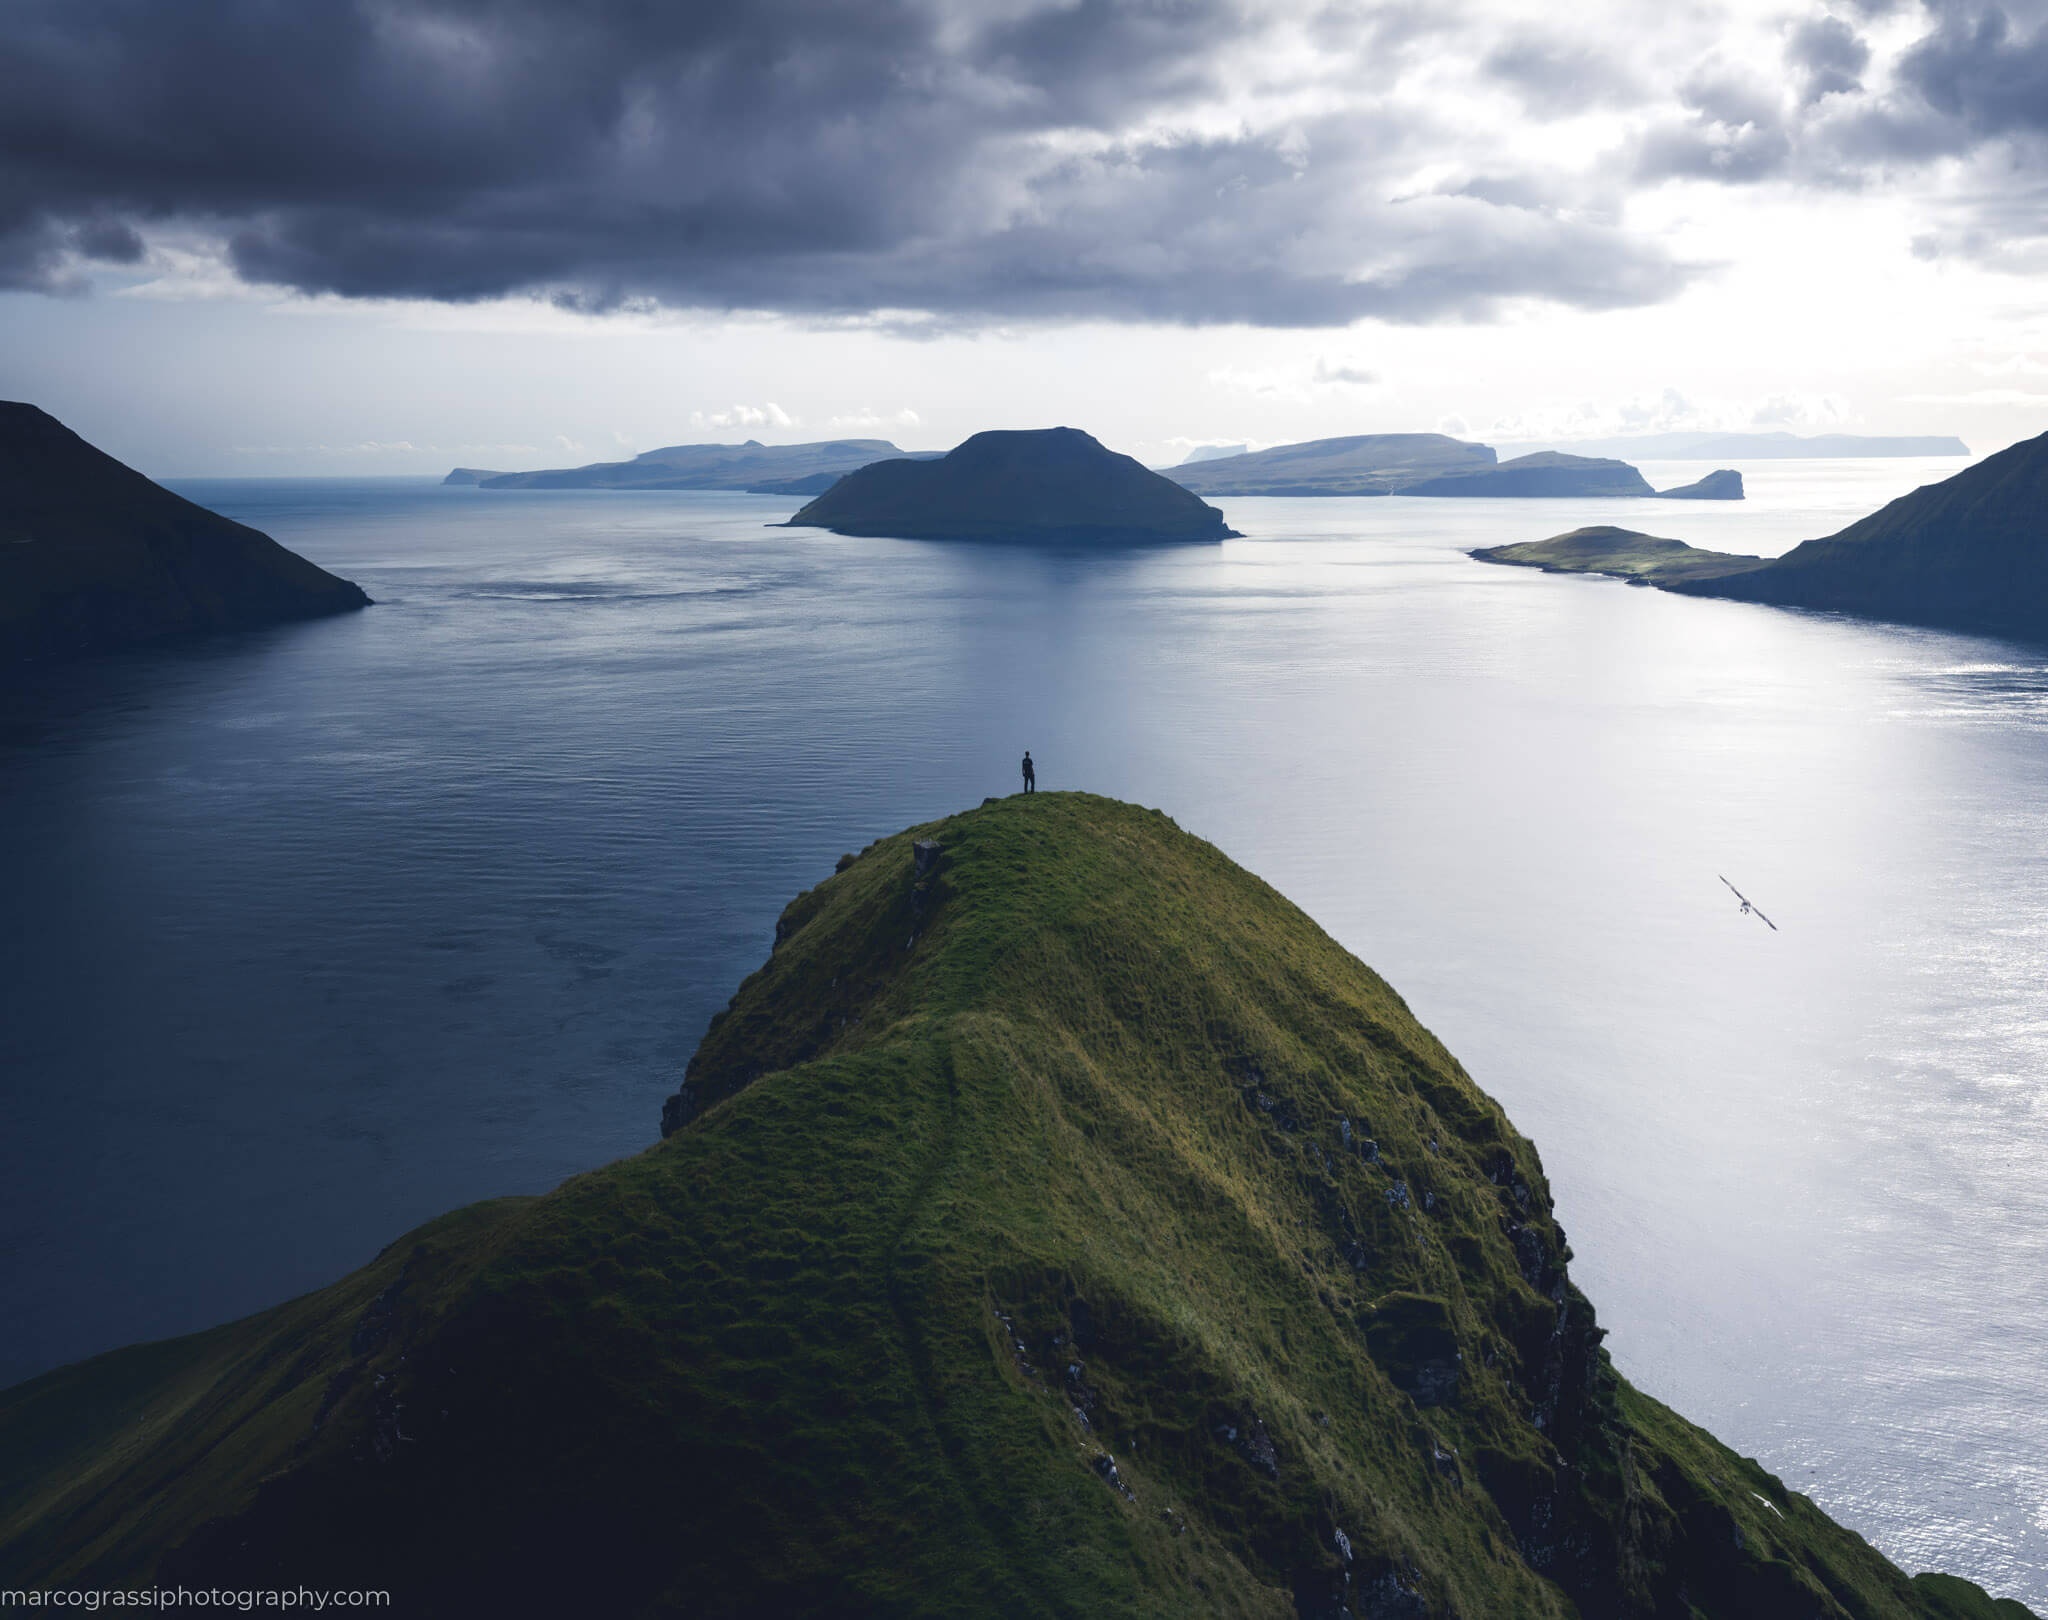 Day hike during the Faroe Islands Photo Tour